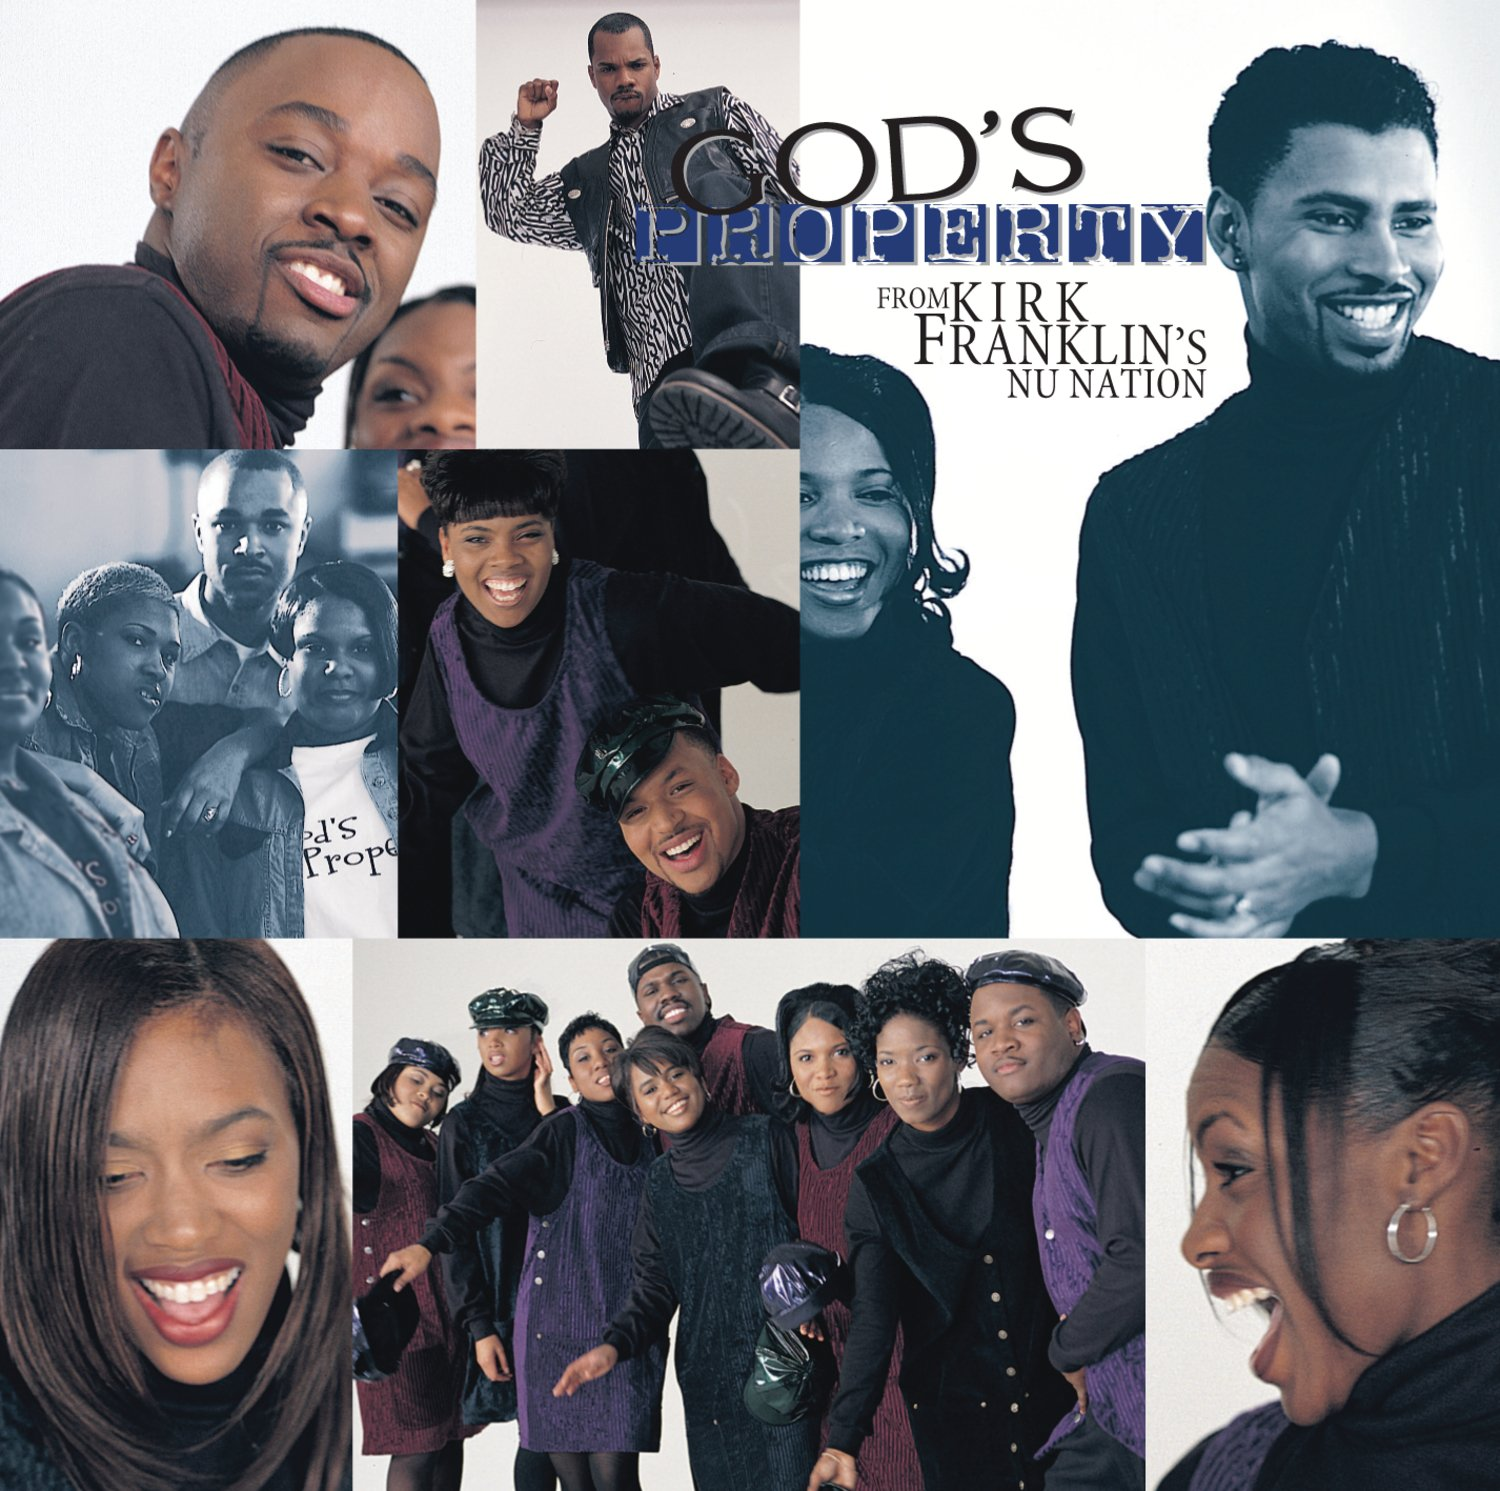 God's Property From Kirk Max 60% OFF Now free shipping Franklin's Nu Nation